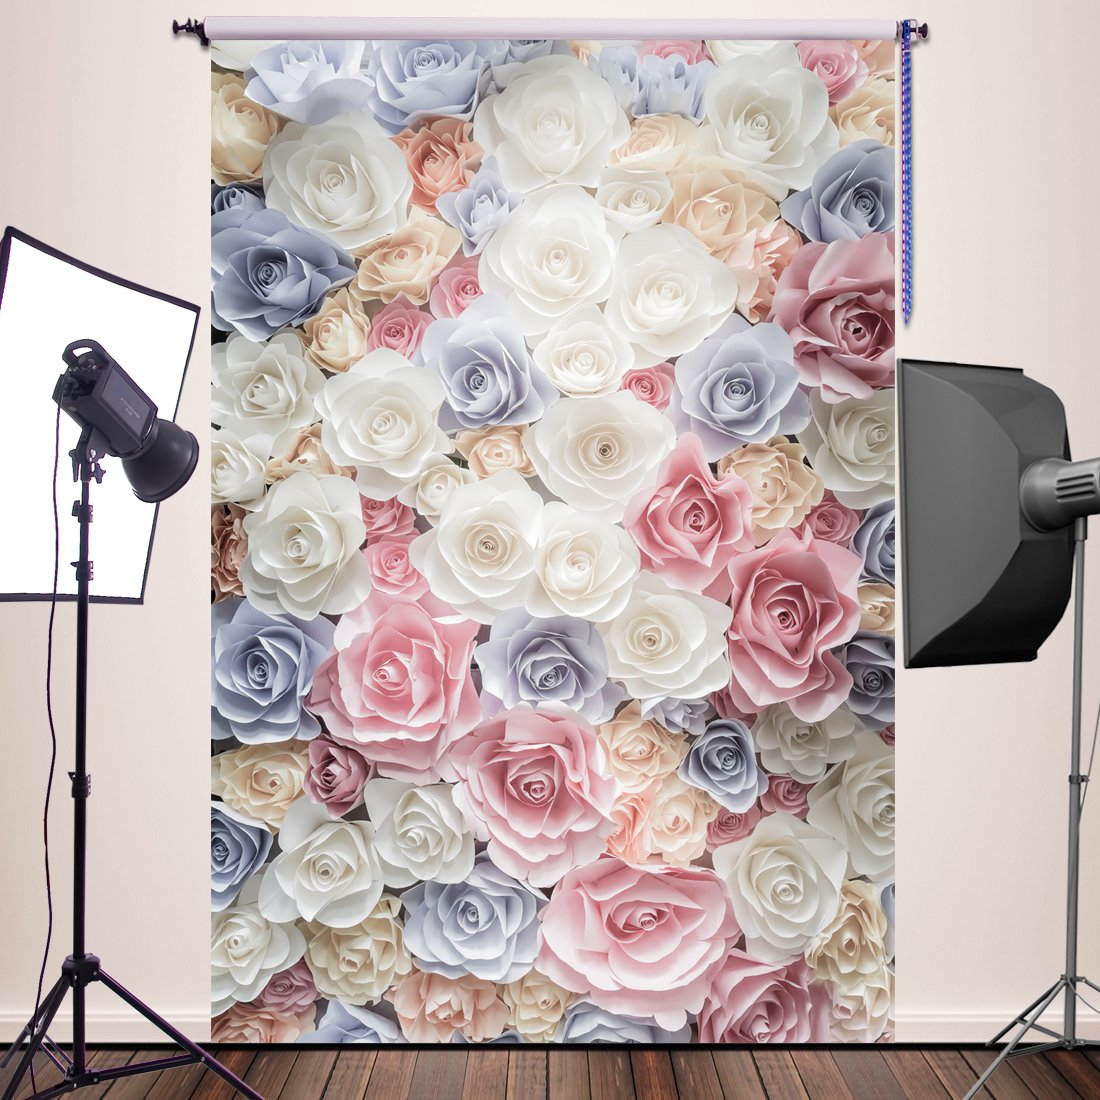 HUAYI 5x7ft Photography Backdrops Valentine's background Pink White Flowers Wall Newborn Baby Photo Studio Props YJ-385